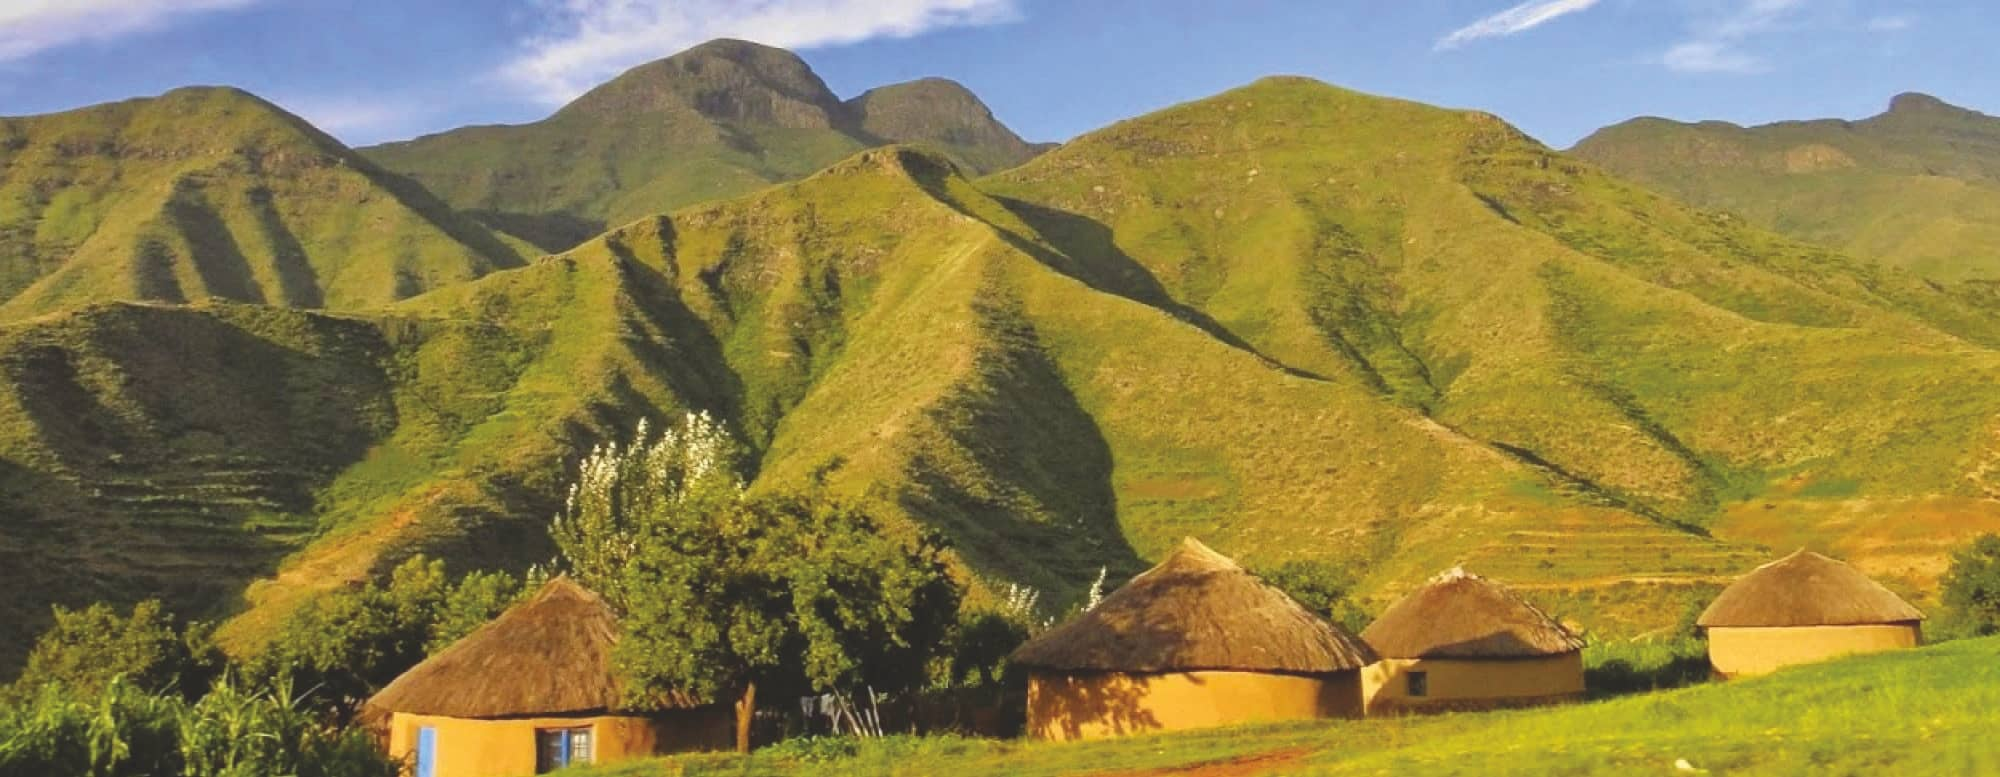 Lesotho: The Most Beautiful African Kingdom